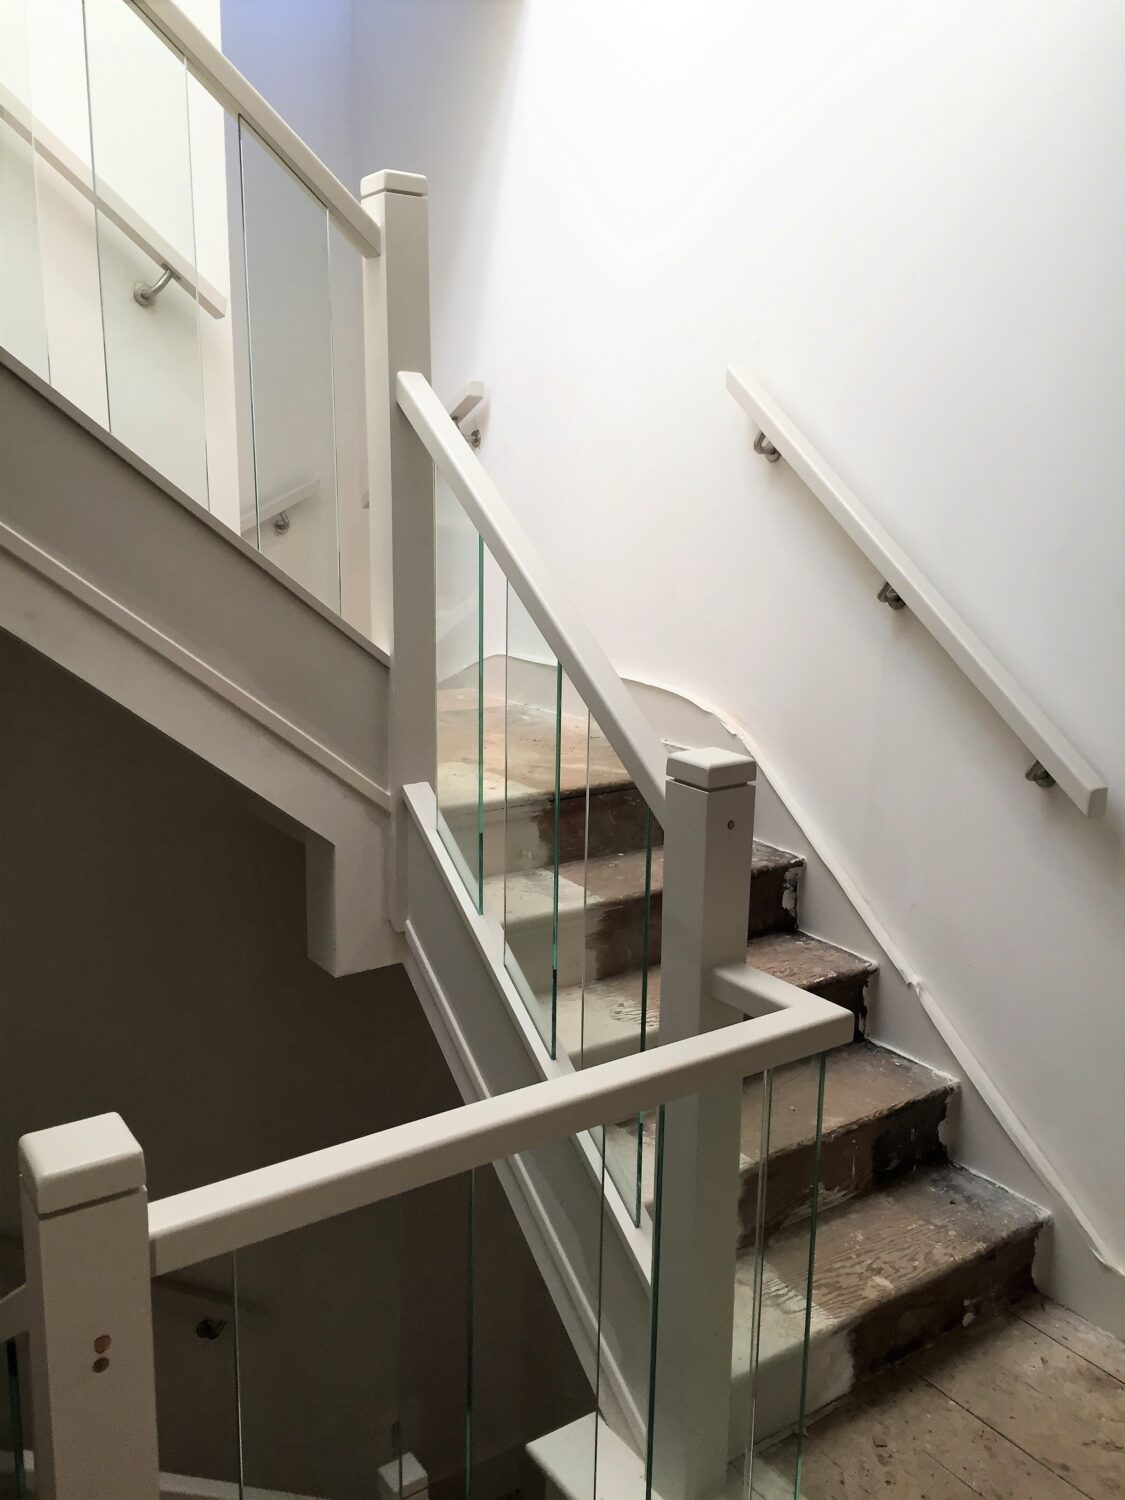 Glass balustrades & Contemporary Staircase, South London